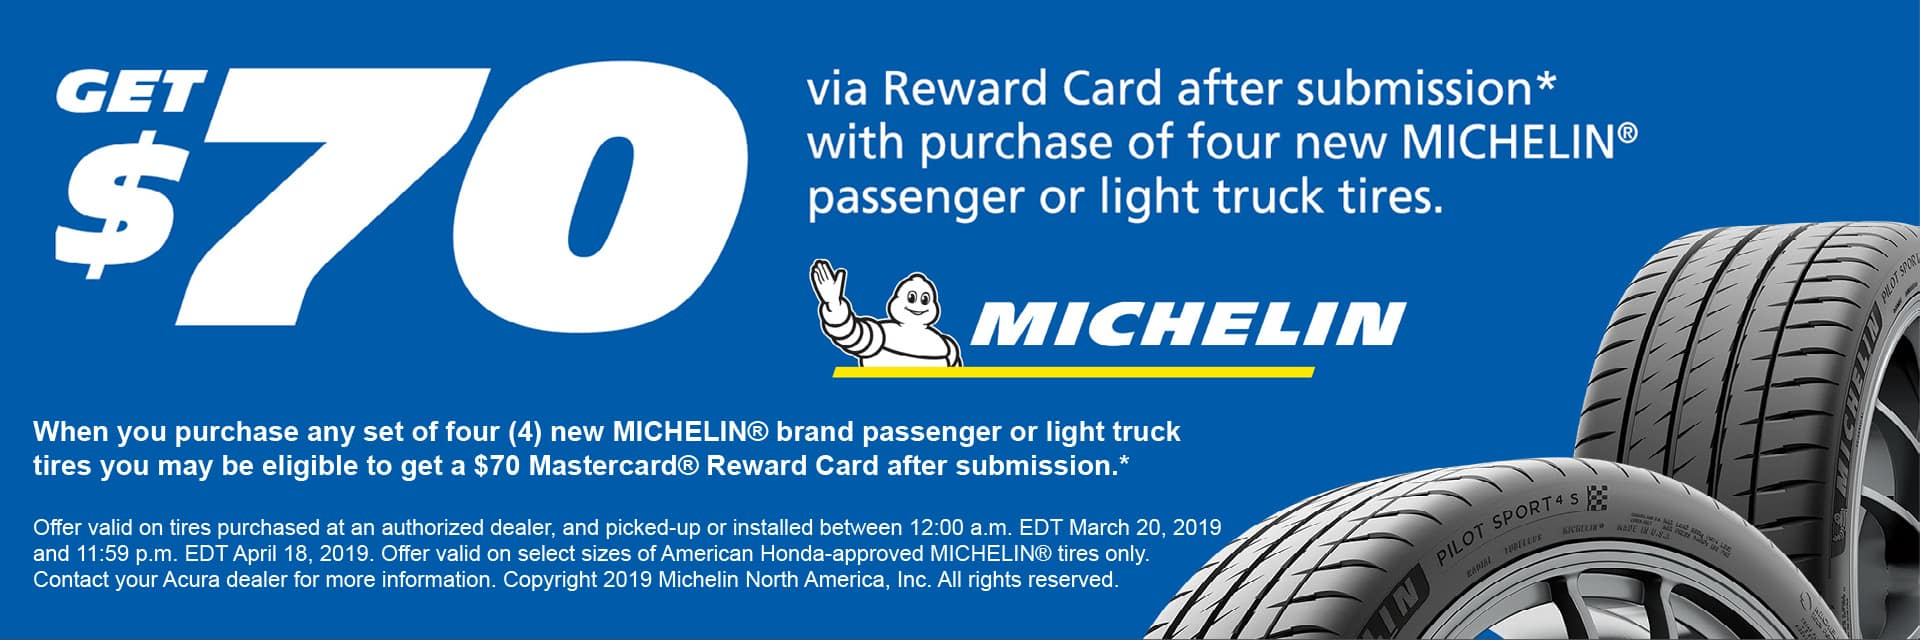 Get-Seventy-Dollars-Via-Reward-Card-After-Submission-With-Purchase-Of-Four-Michelin-Passenger-Or-Light-Truck-Tires